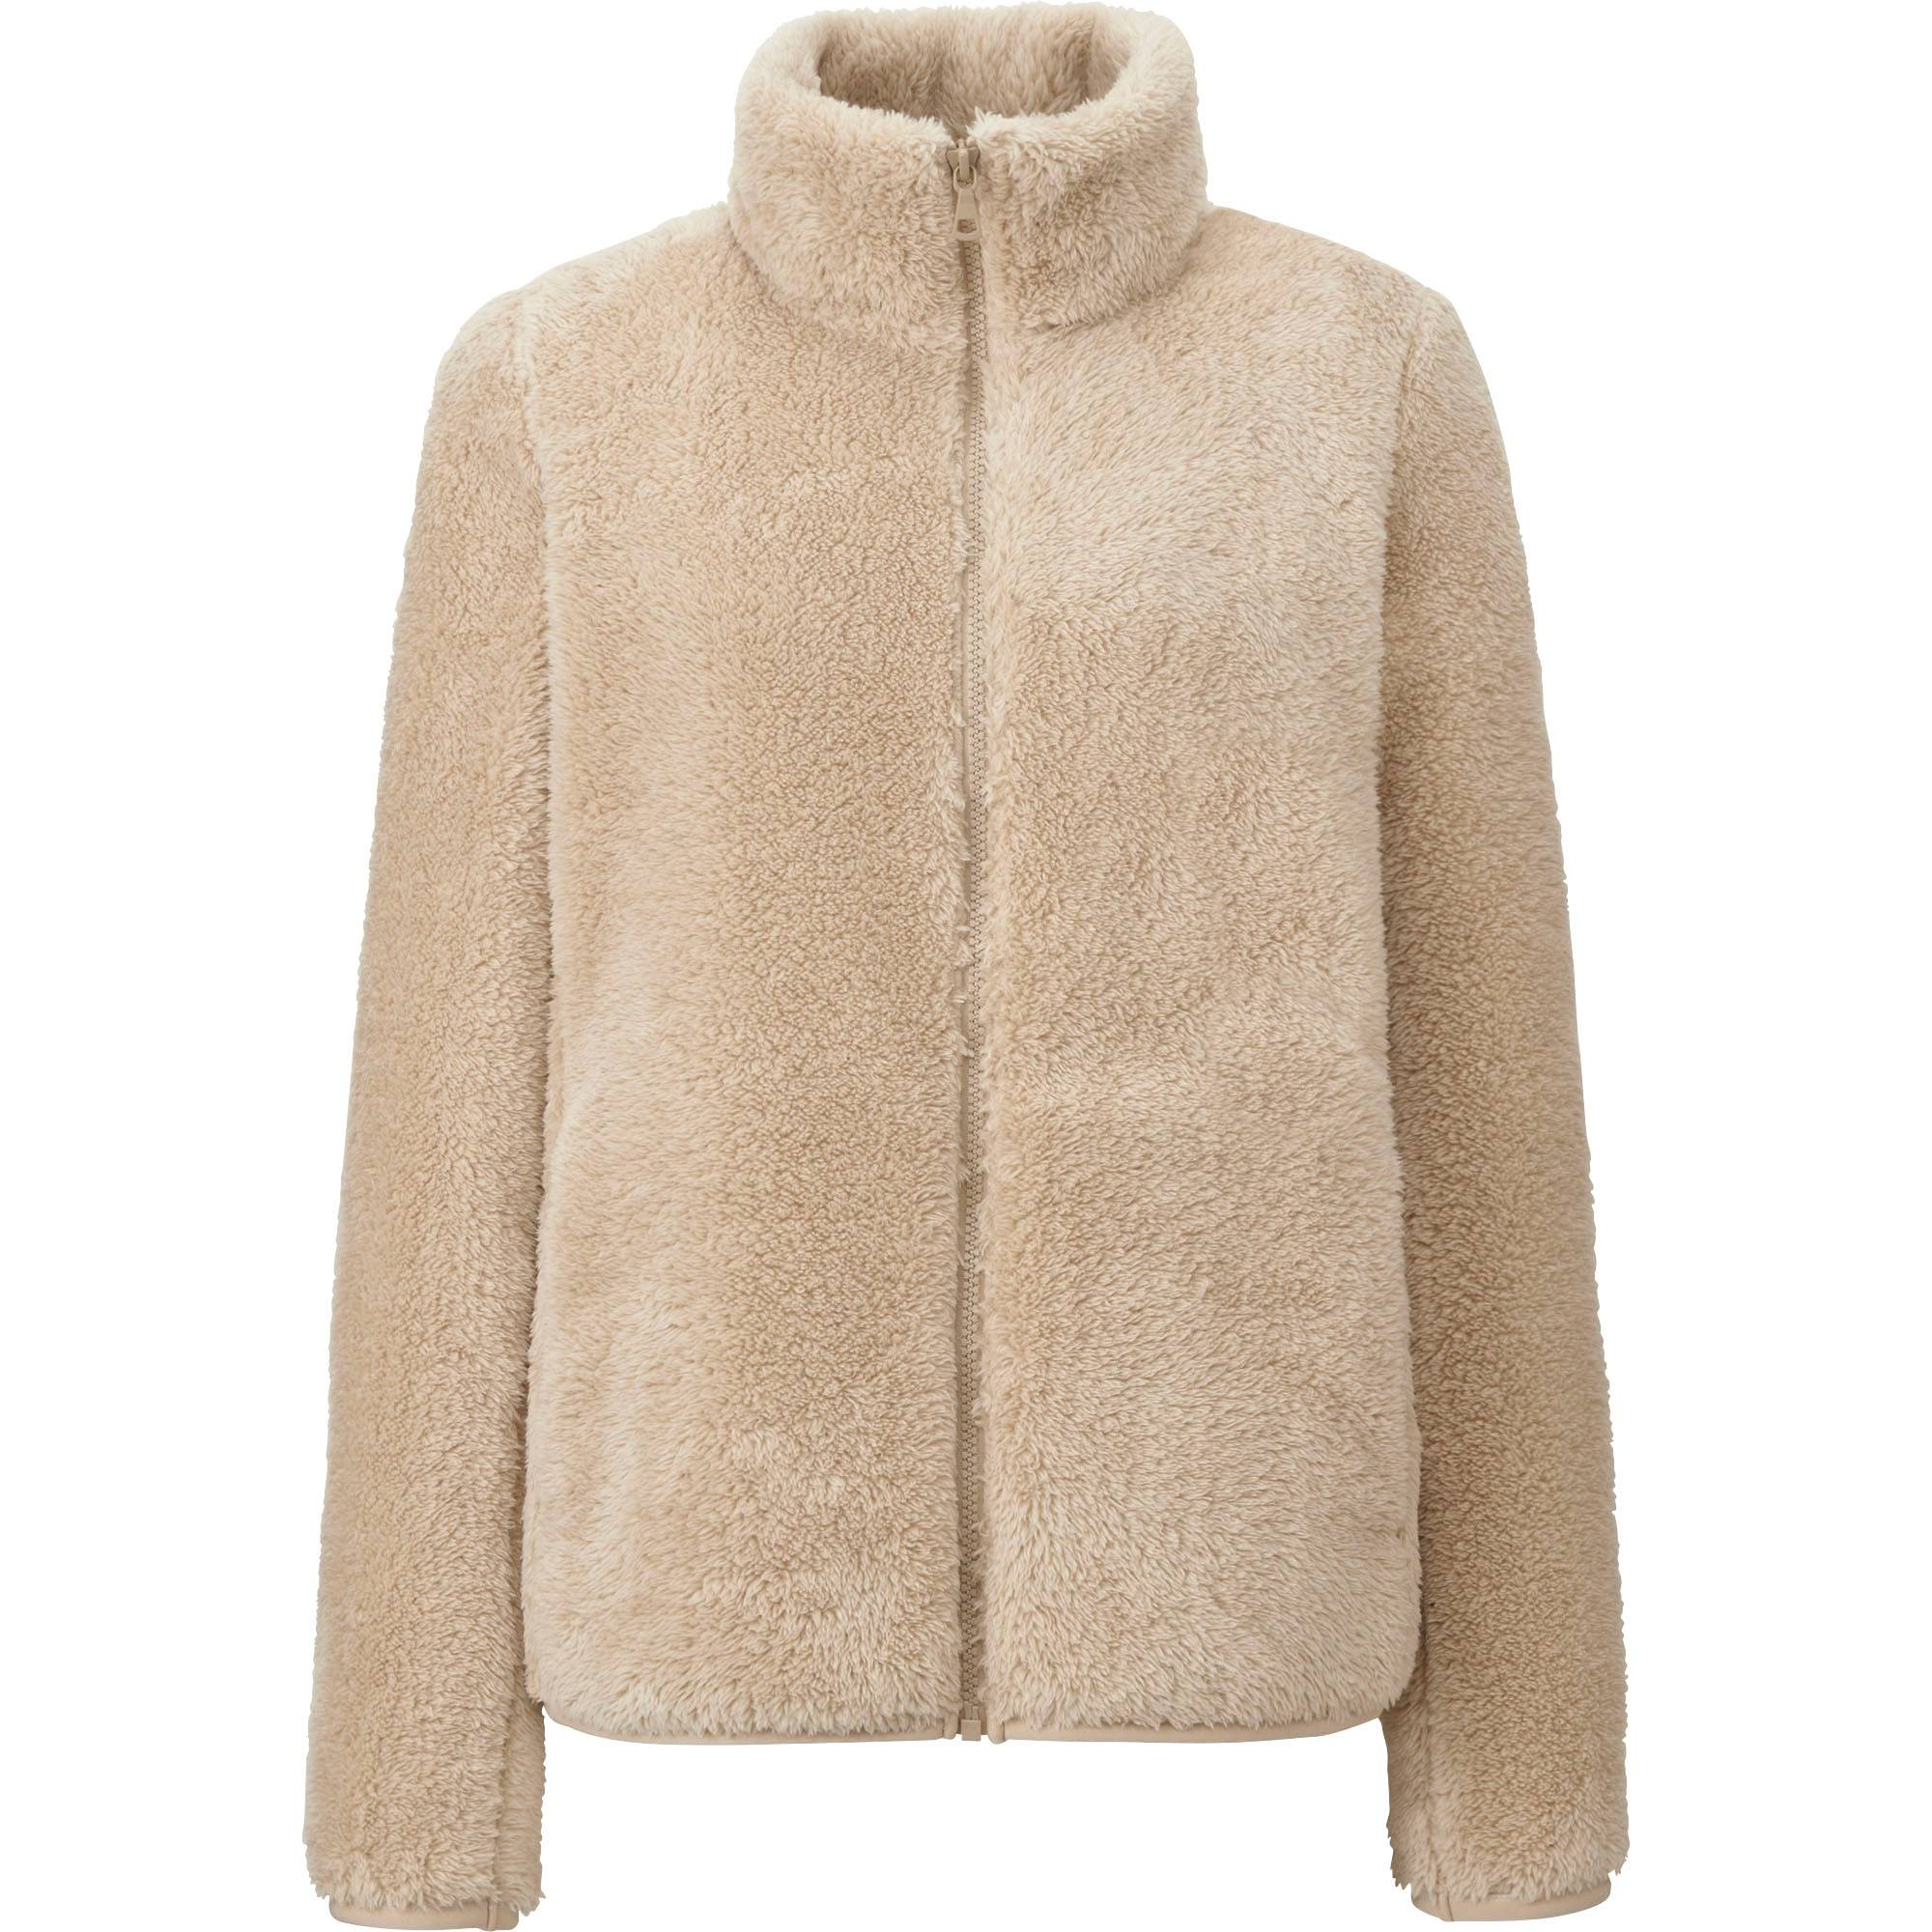 WOMEN FLUFFY YARN FLEECE FULL ZIP JACKET | UNIQLO US